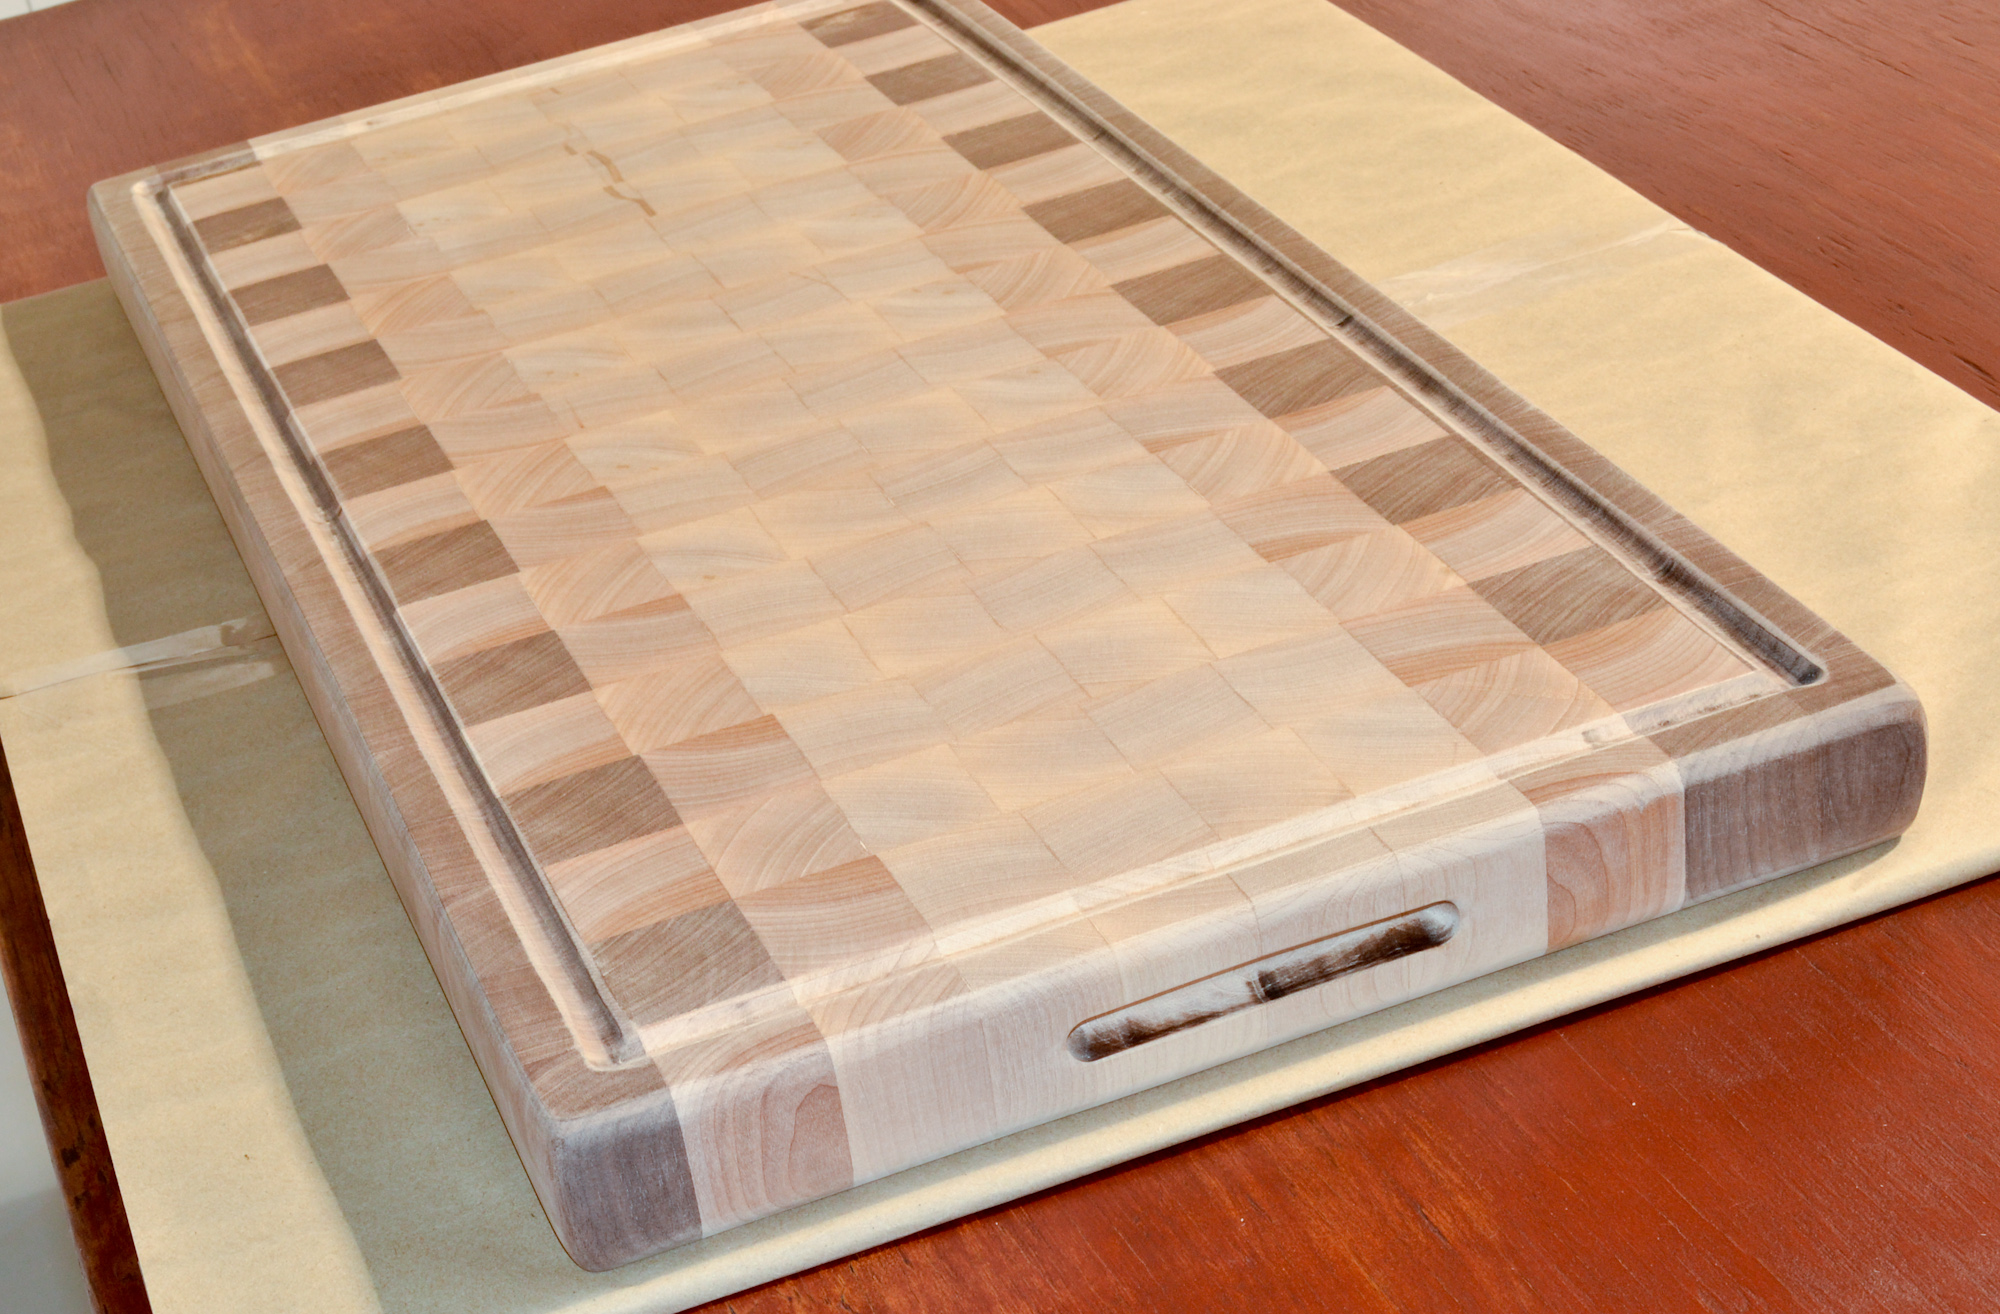 how to finish a wood cutting board?